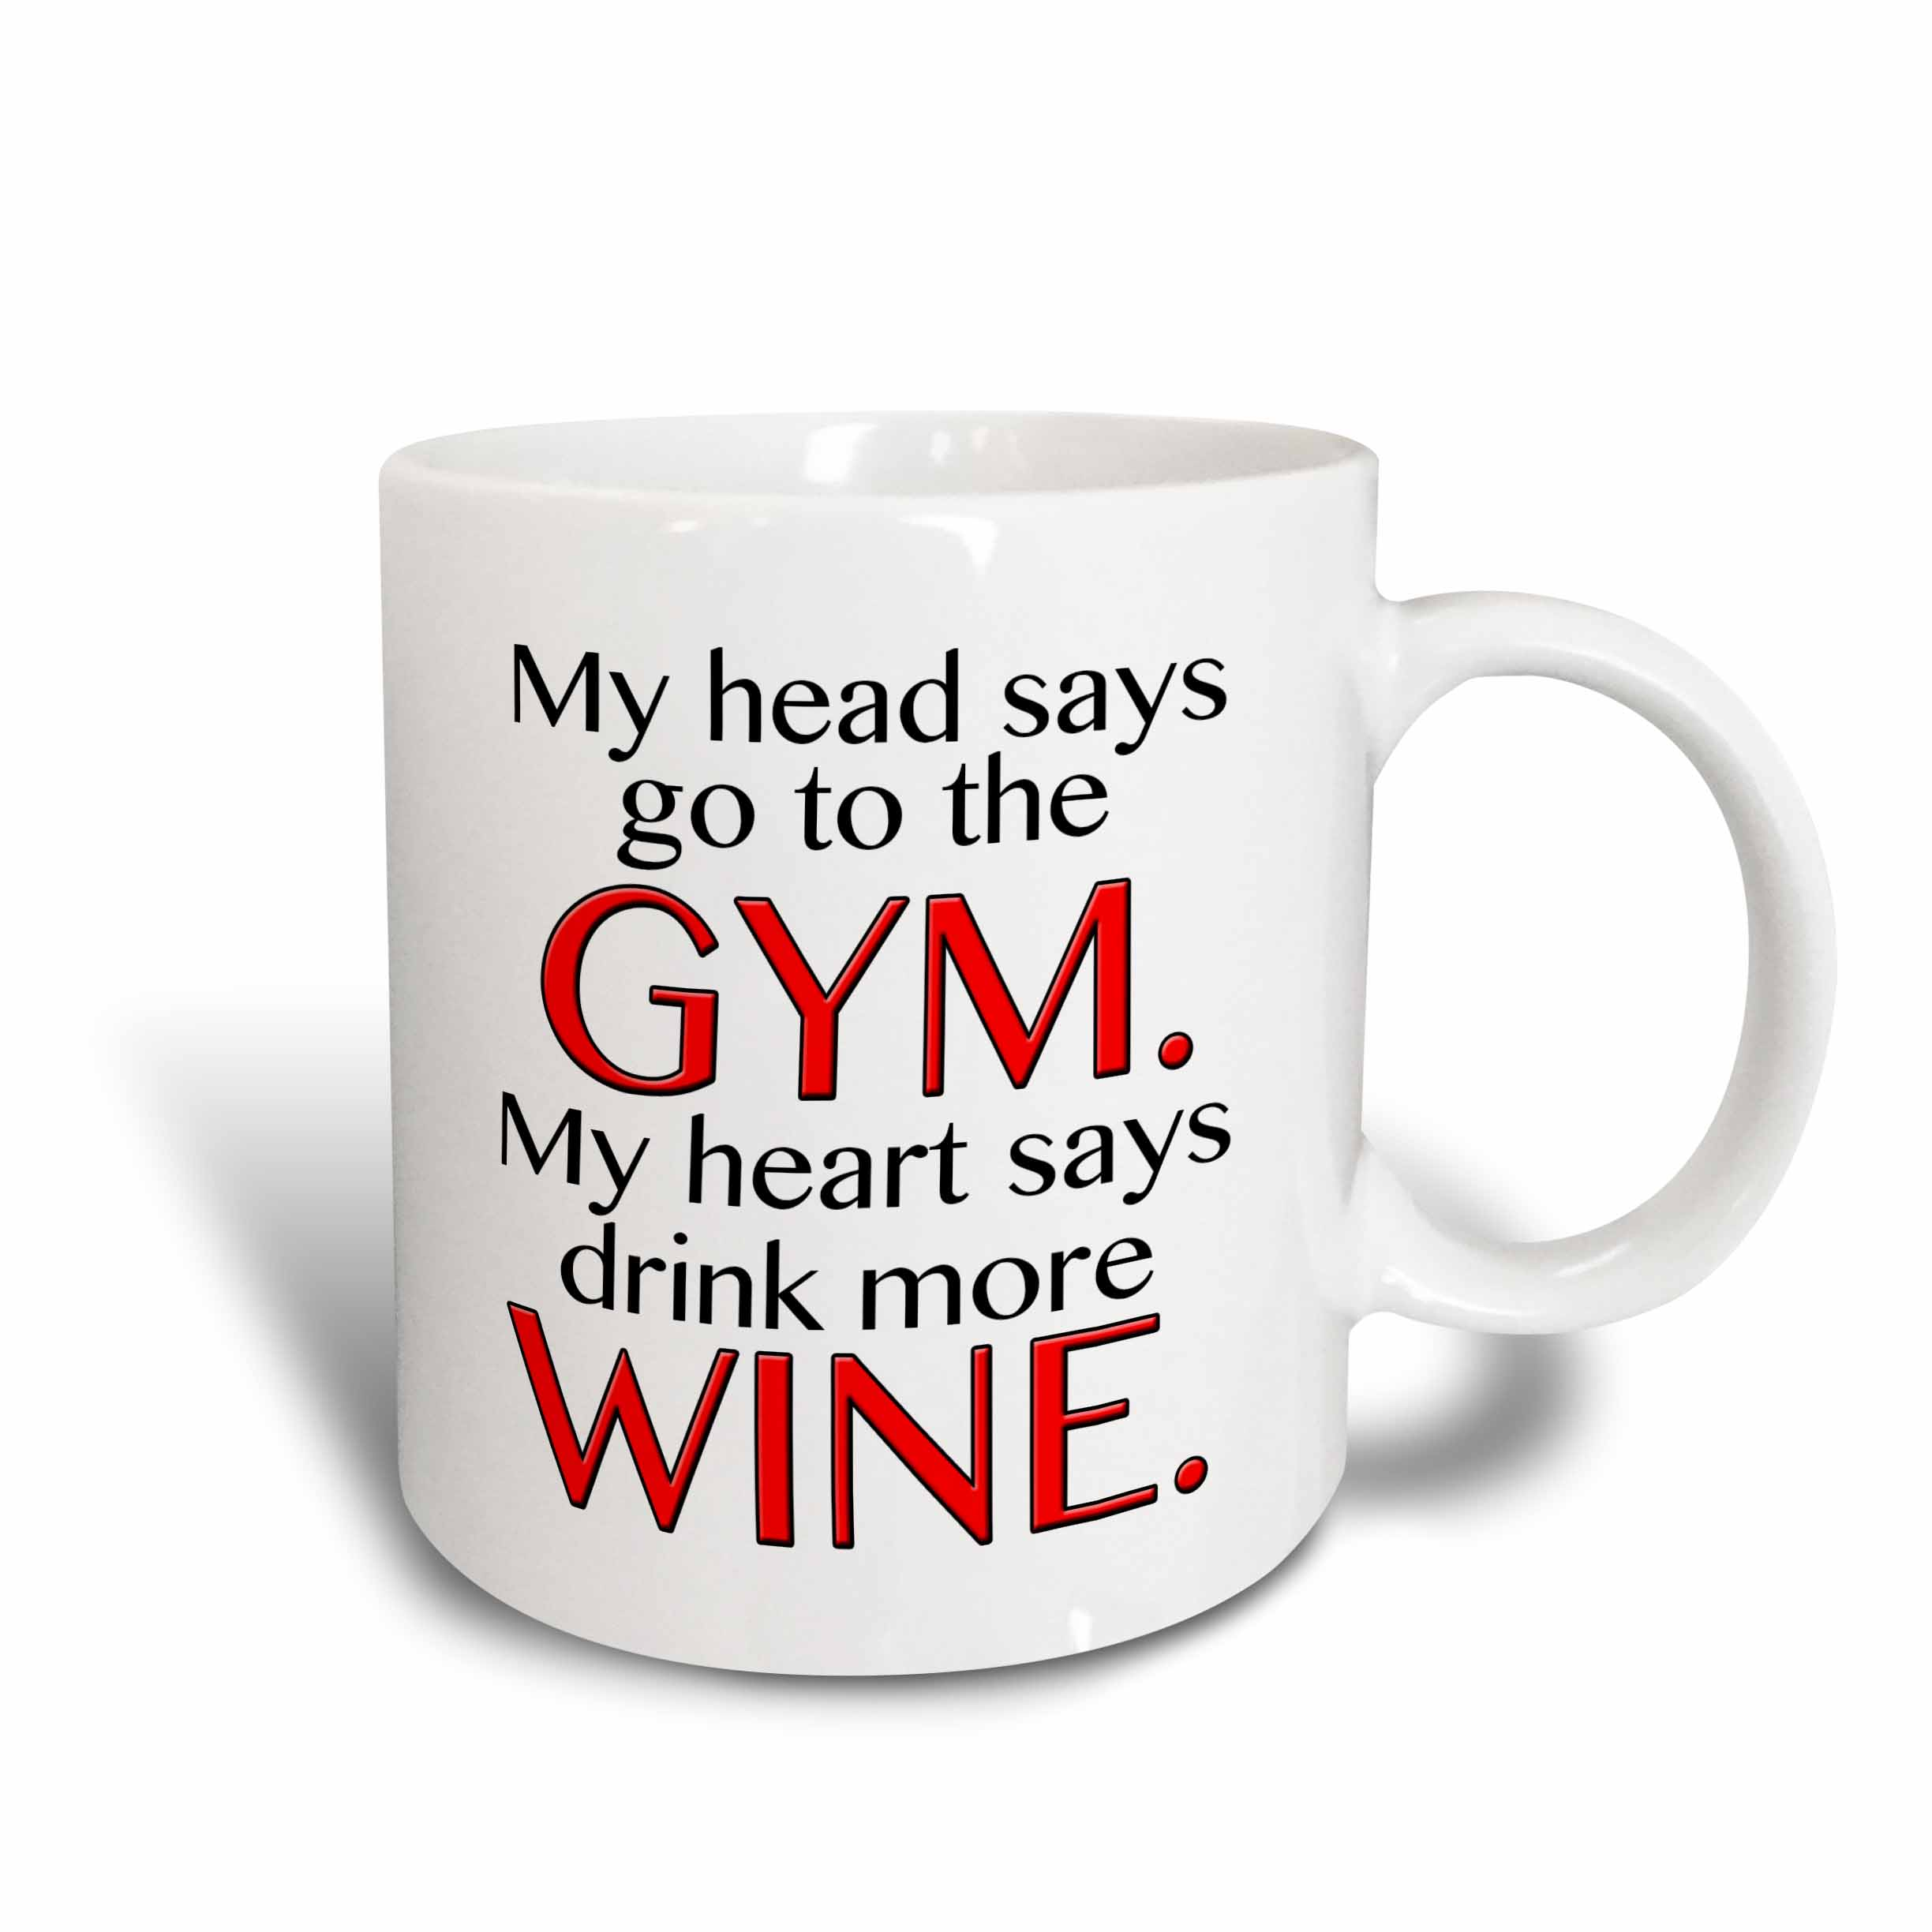 3dRose My head says go to the GYM my heart says drink more WINE. Red., Ceramic Mug, 15-ounce